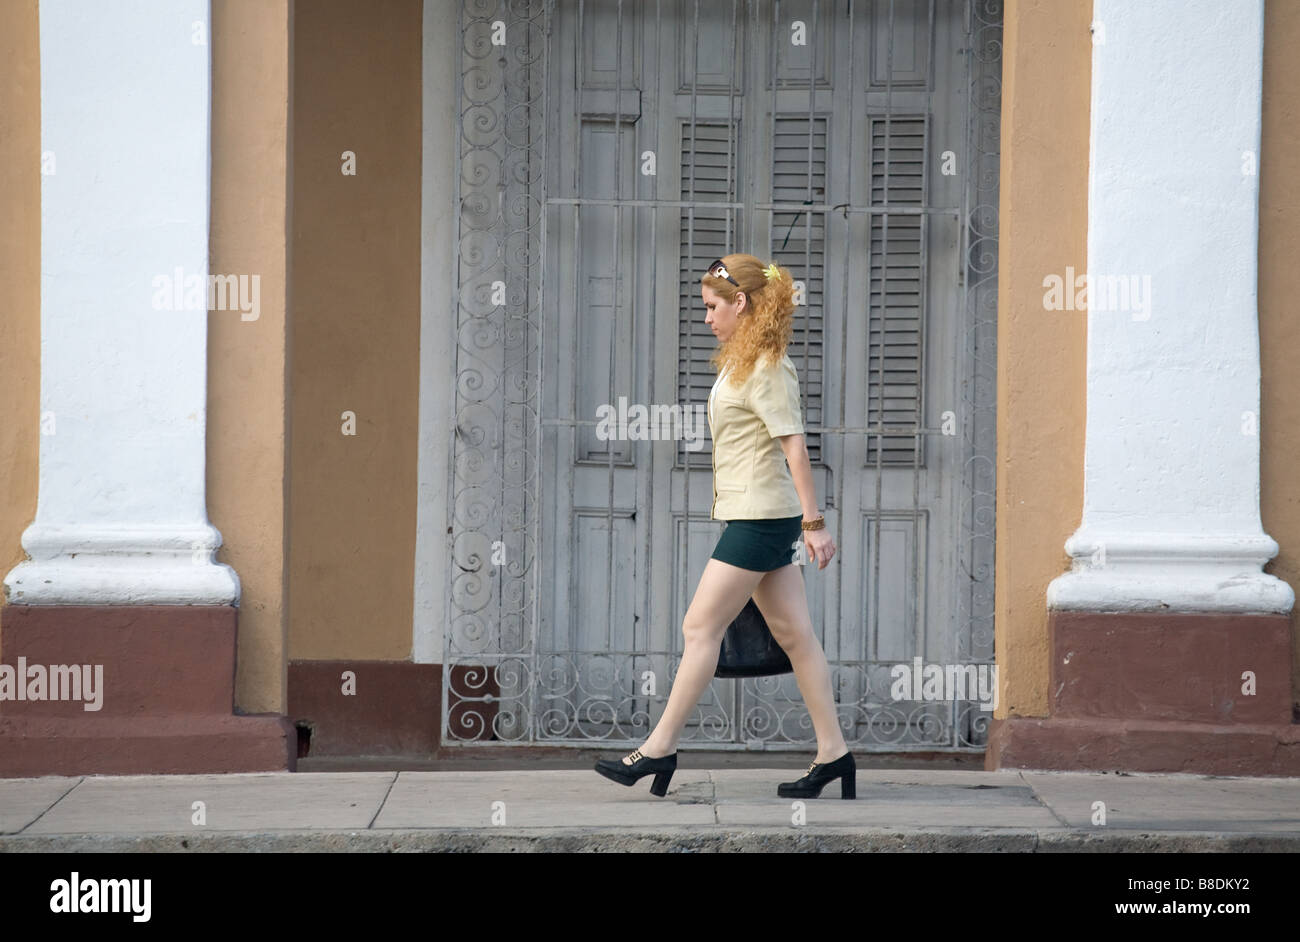 Young blonde woman wearing a miniskirt in Cienfuegos, Cuba - Stock Image